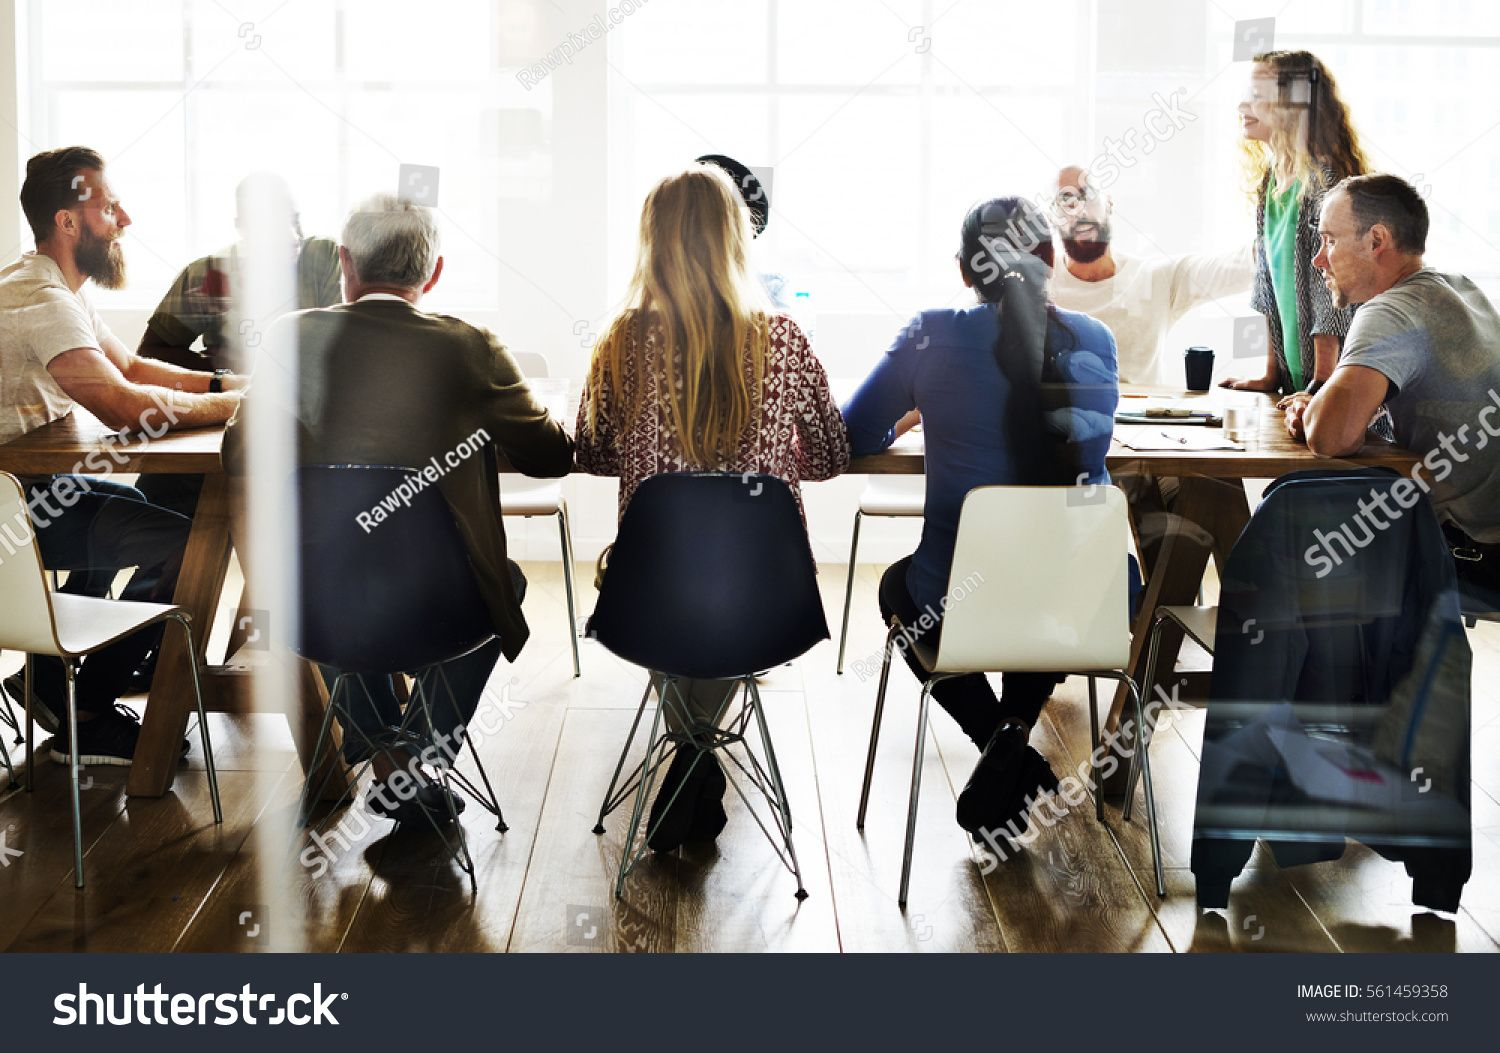 Meeting Table Networking Sharing Concept (มีรูปภาพ)